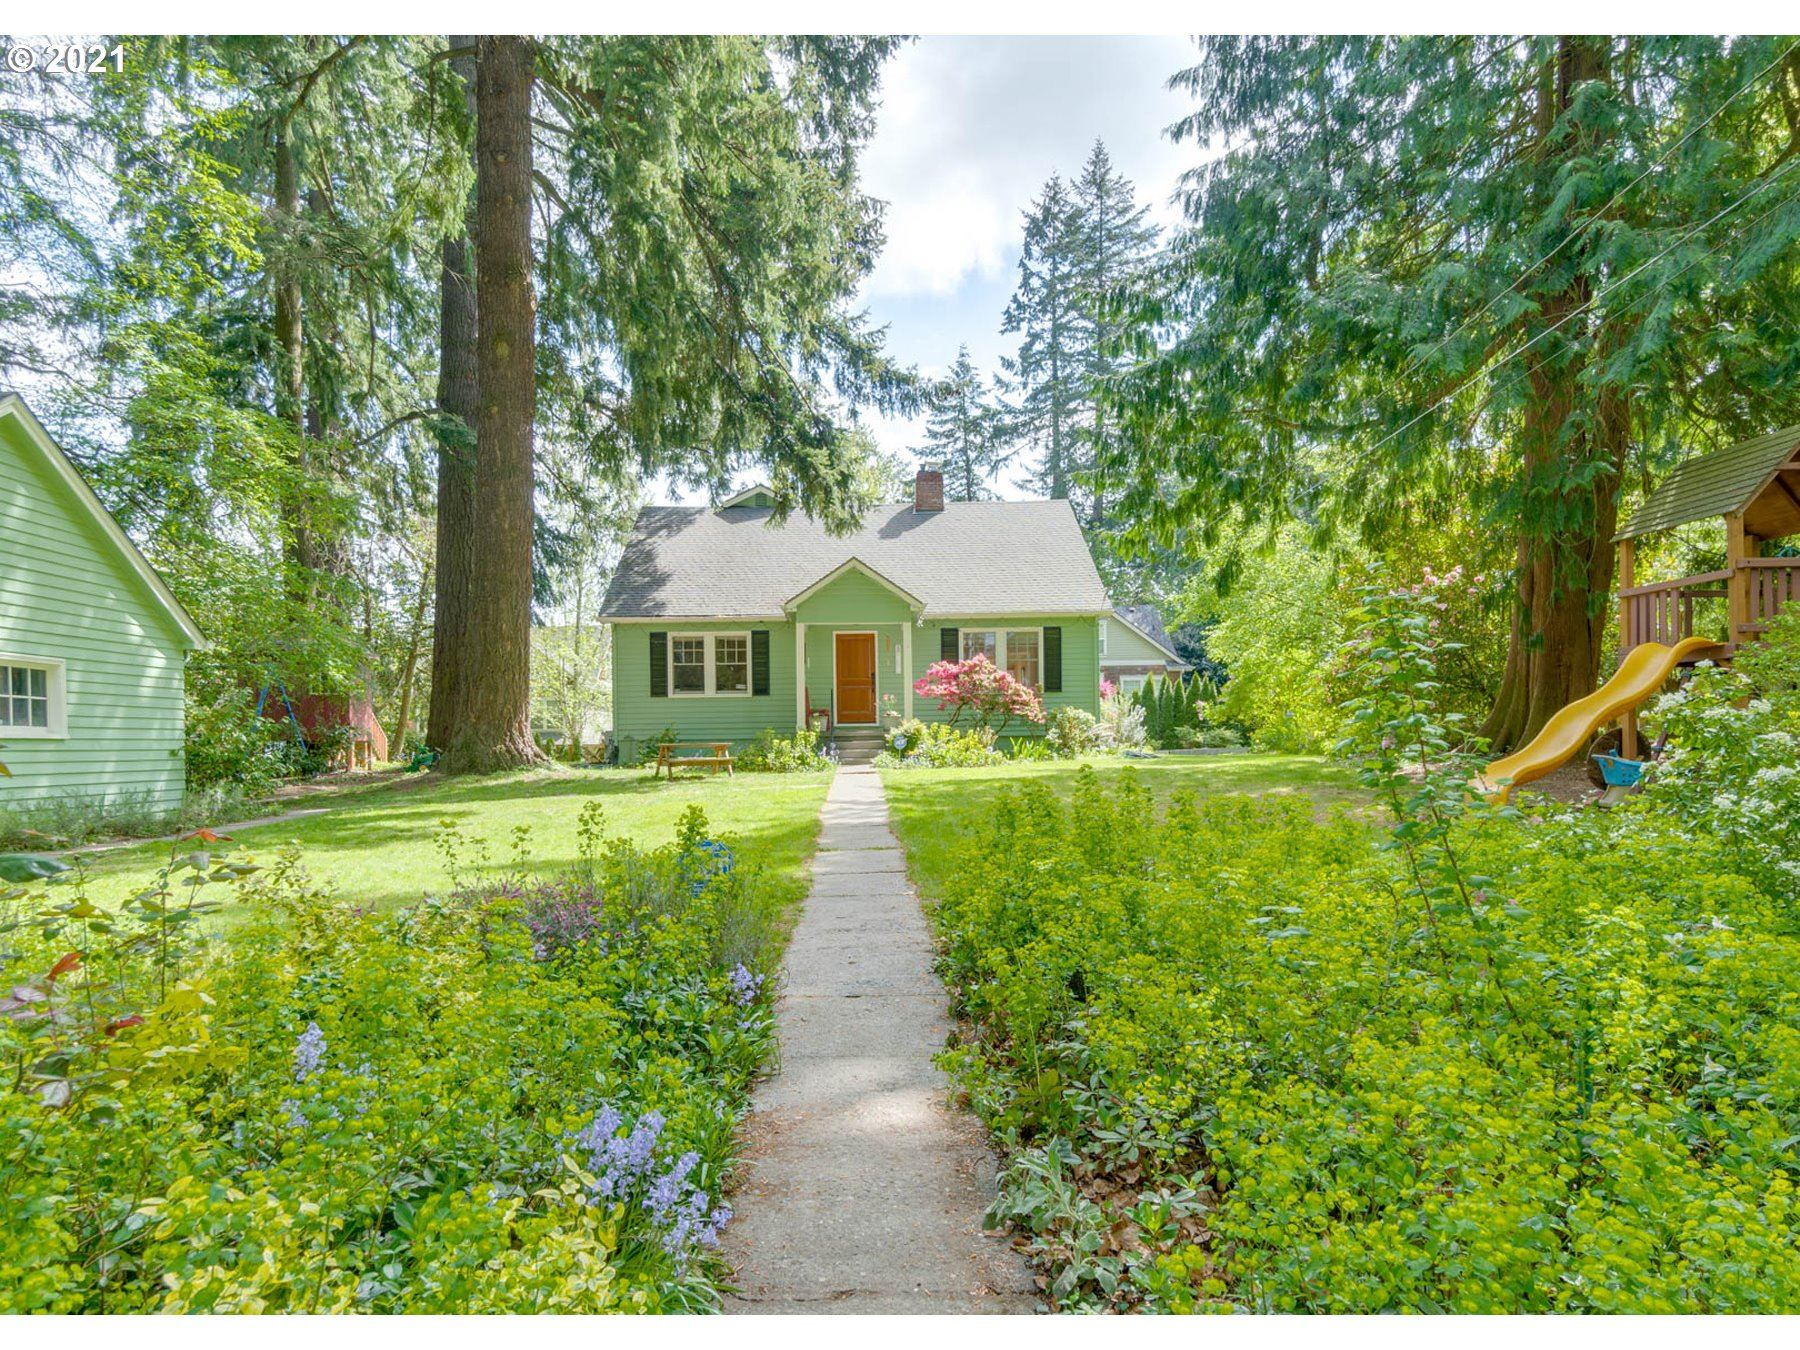 8952 SW 25TH AVE, Portland, OR 97219 - MLS#: 21004930